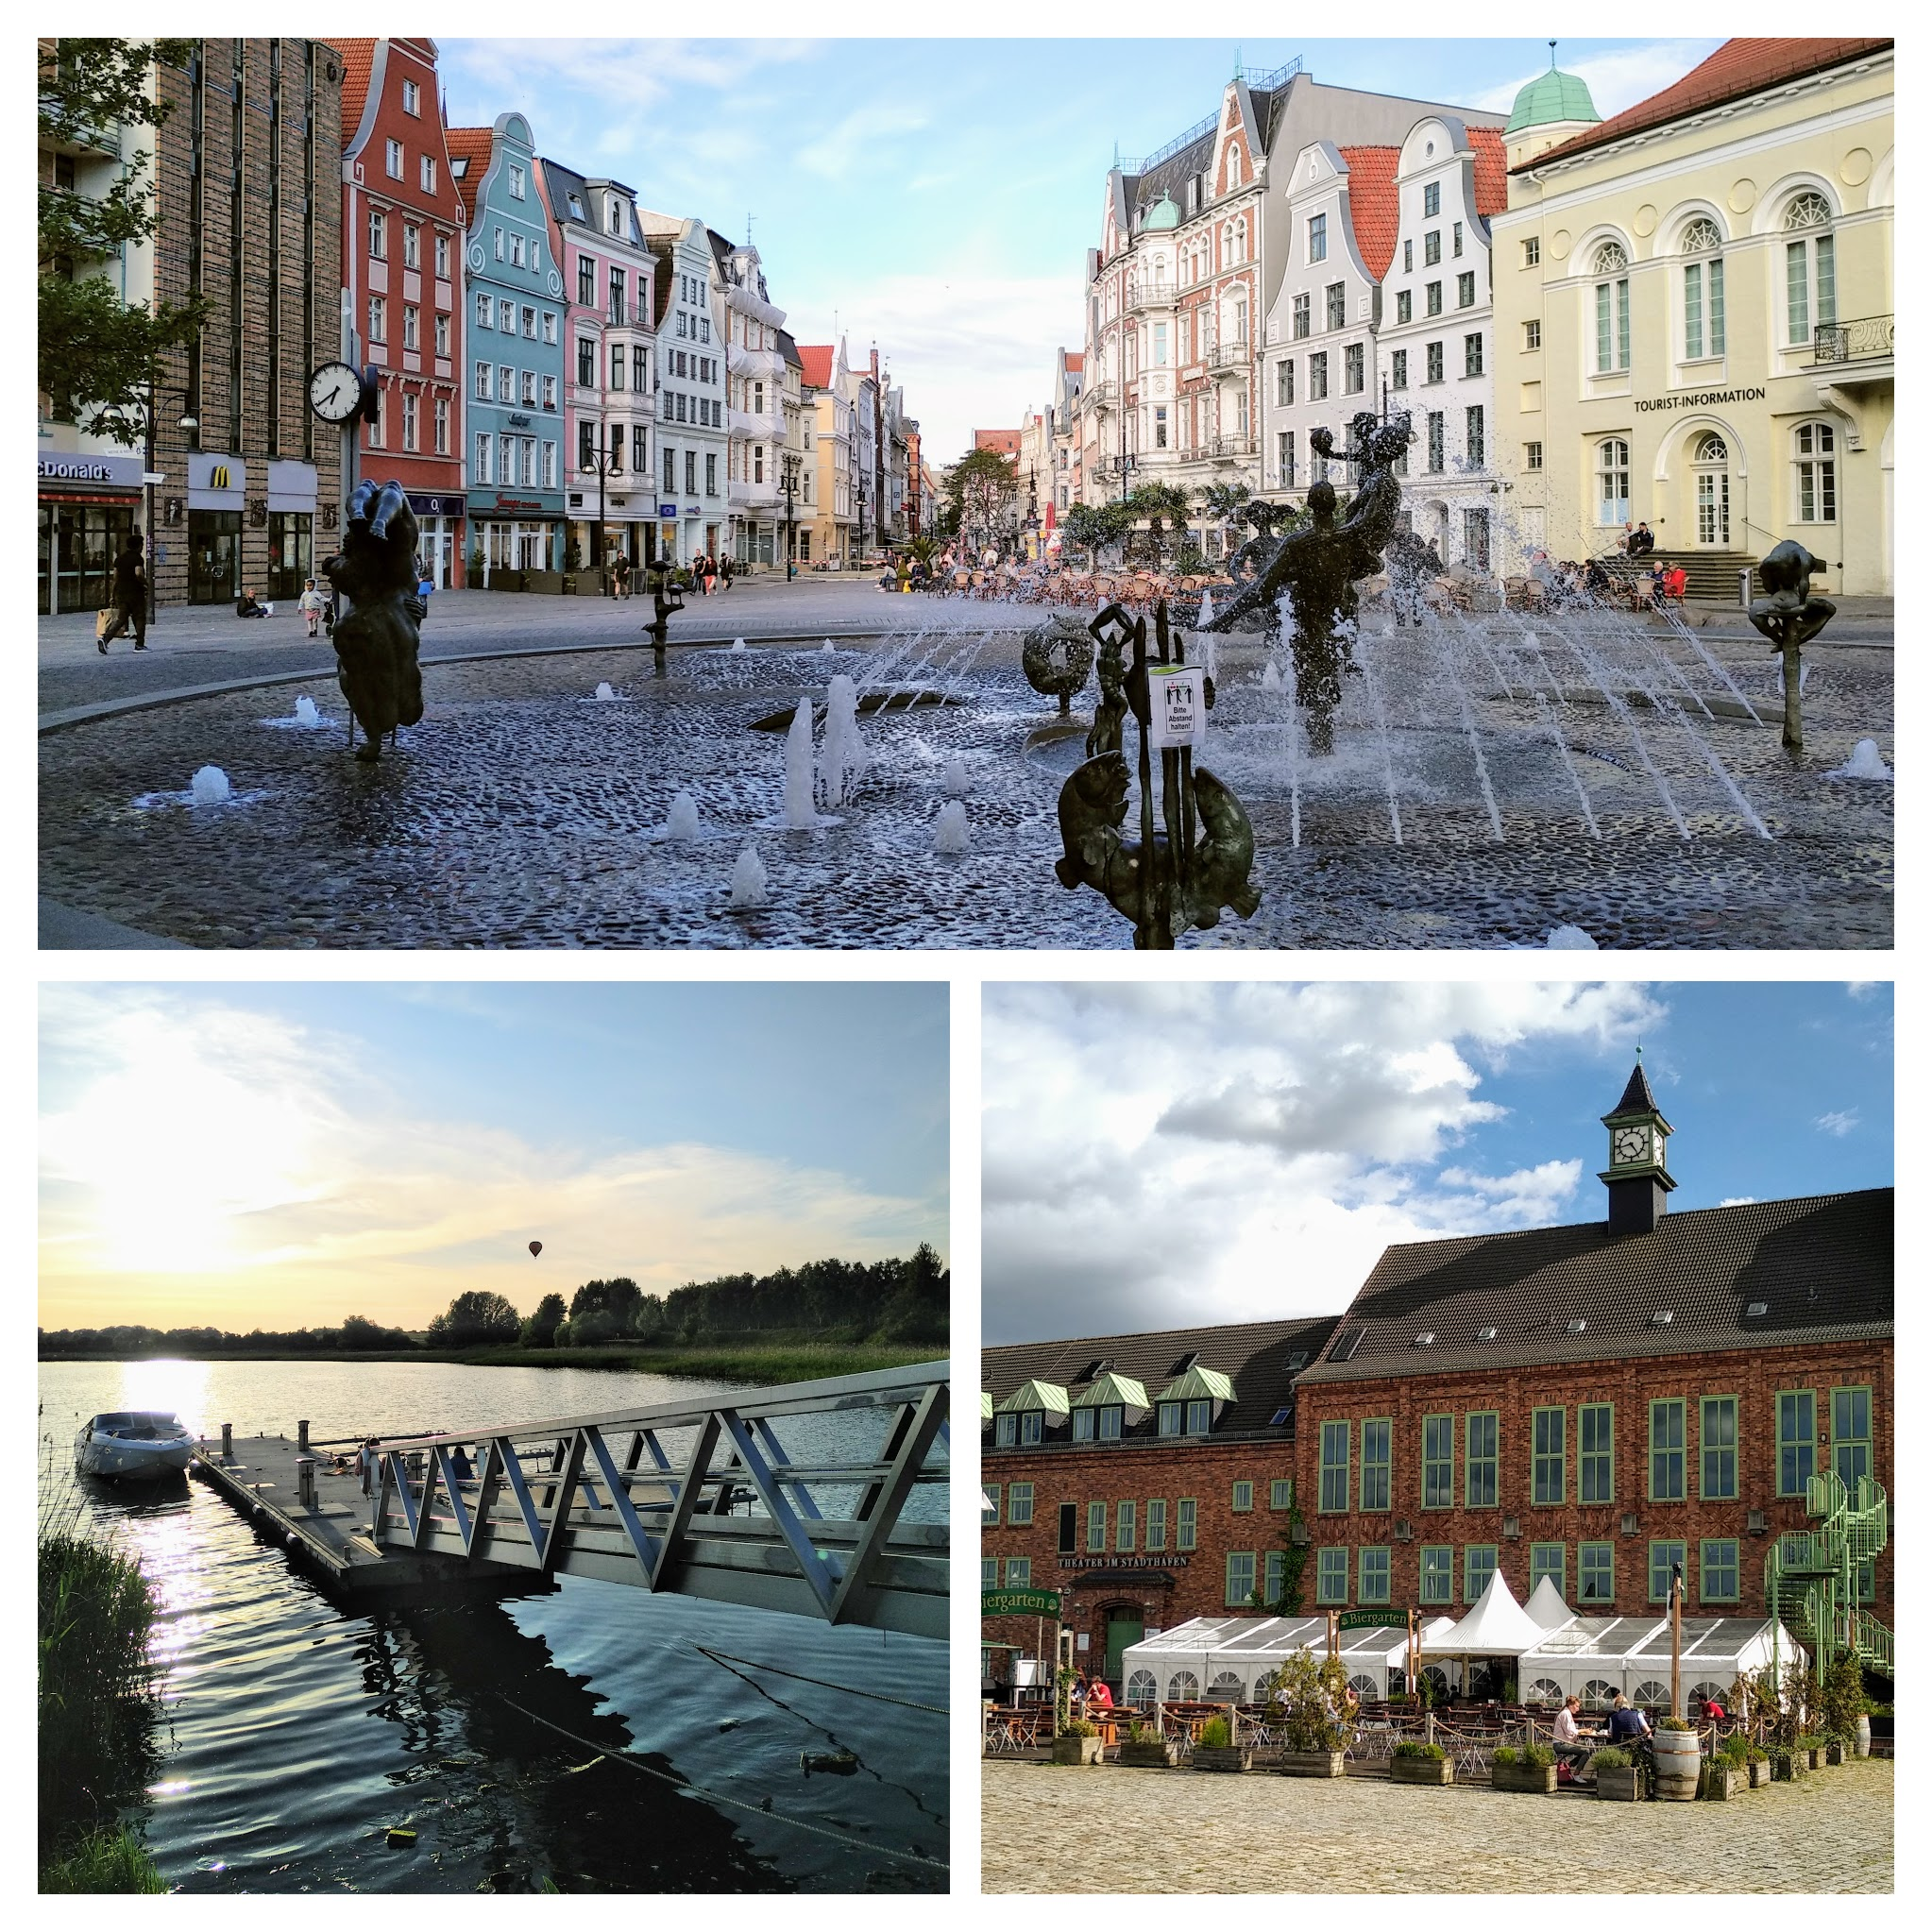 img_20200530_164432-collage